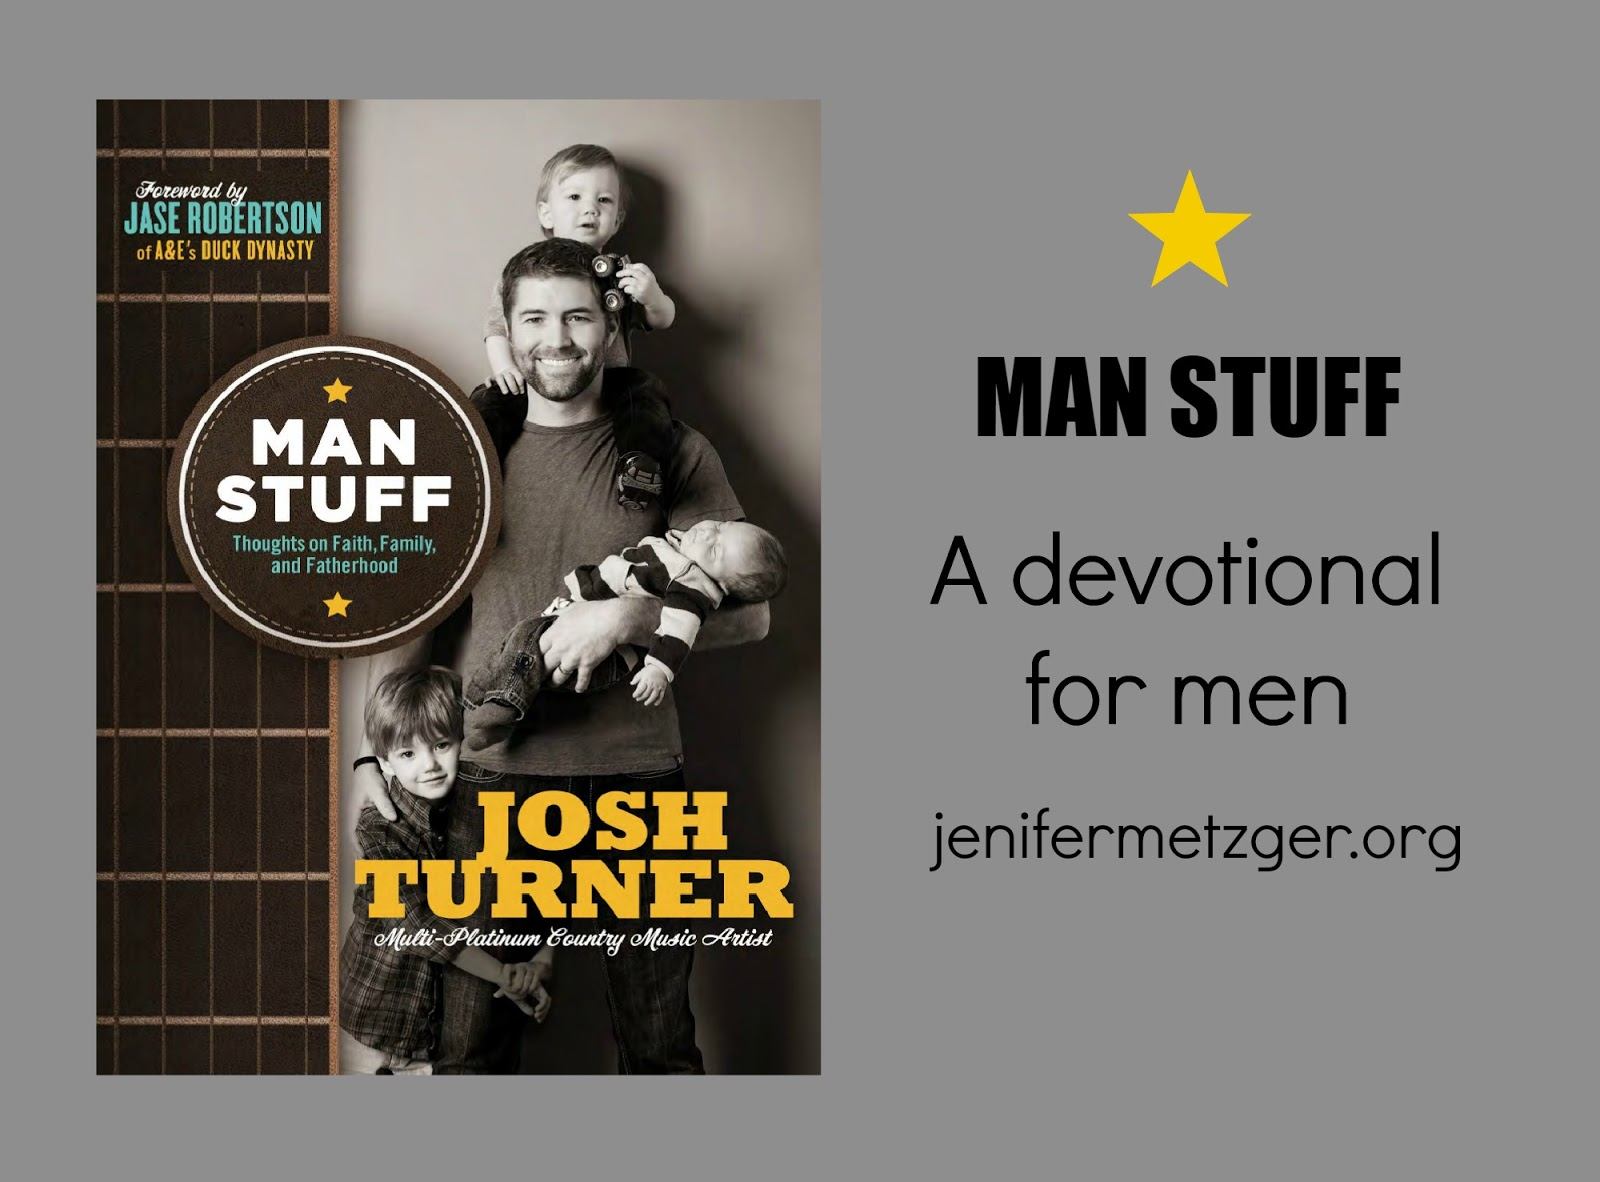 Man Stuff, a devotional for men. #fatherhood #manstuff #men #devotional